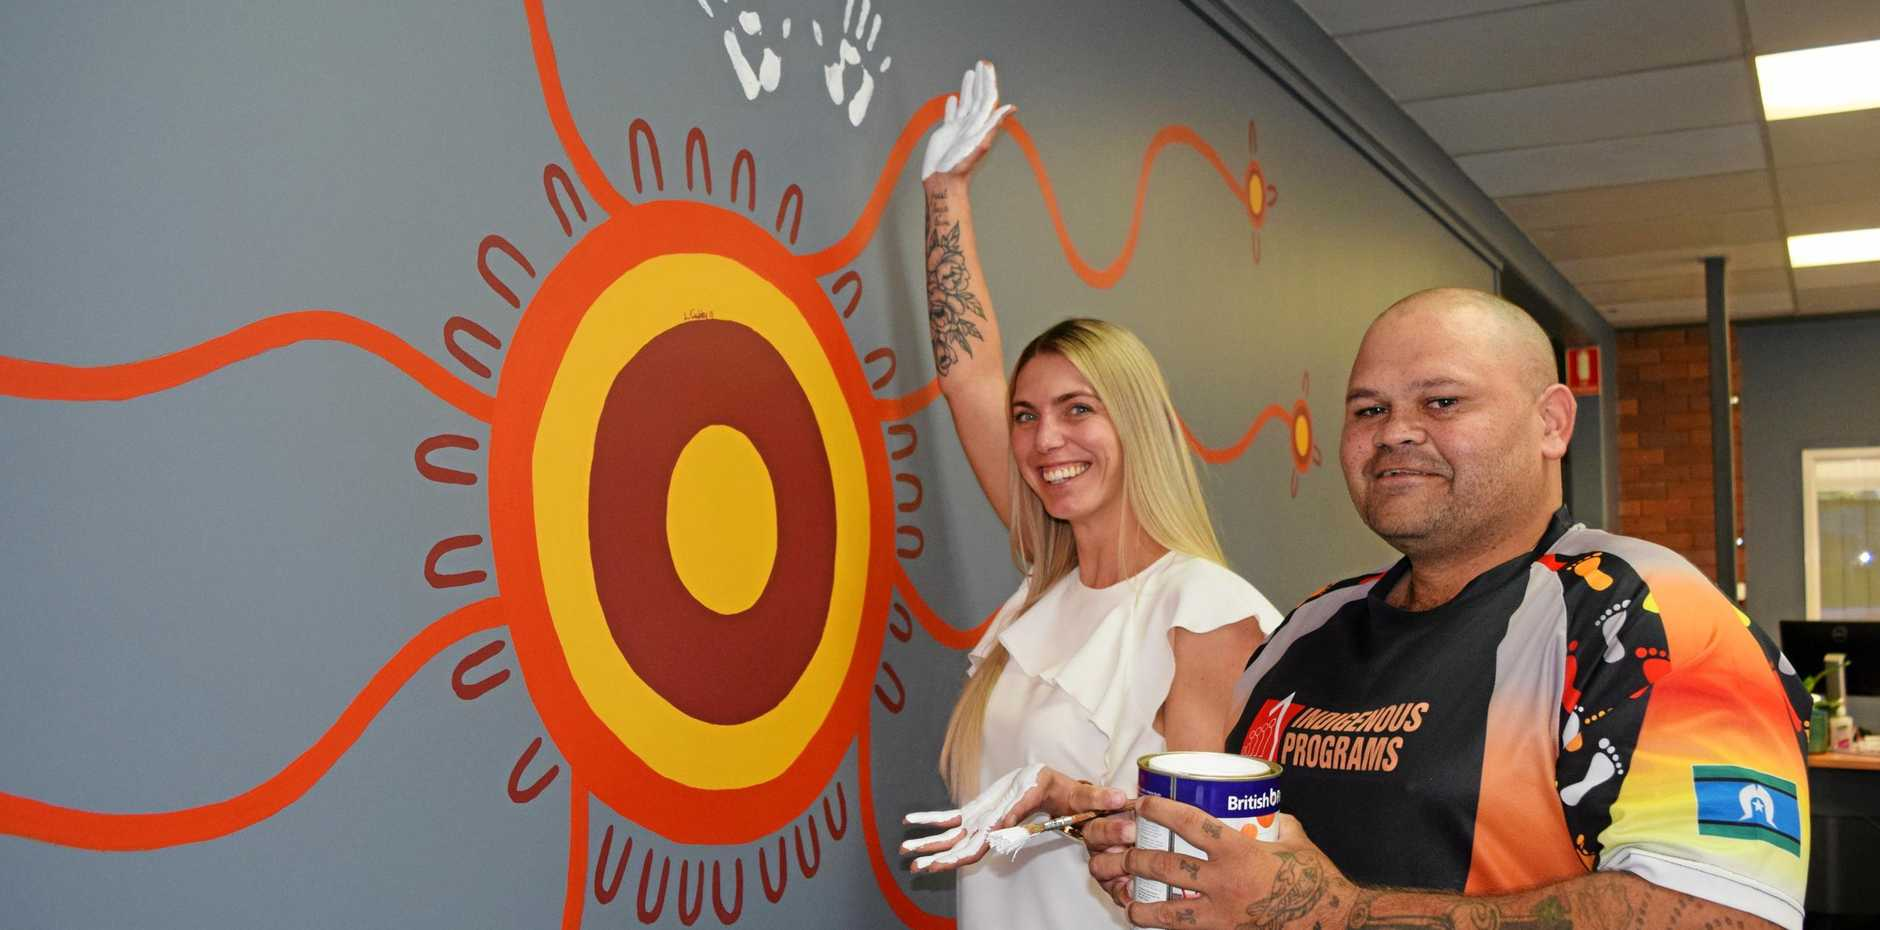 PAYING RESPECT: Sarah Peterson and artist Lionel Cubby at BEST employment in front of their new mural.